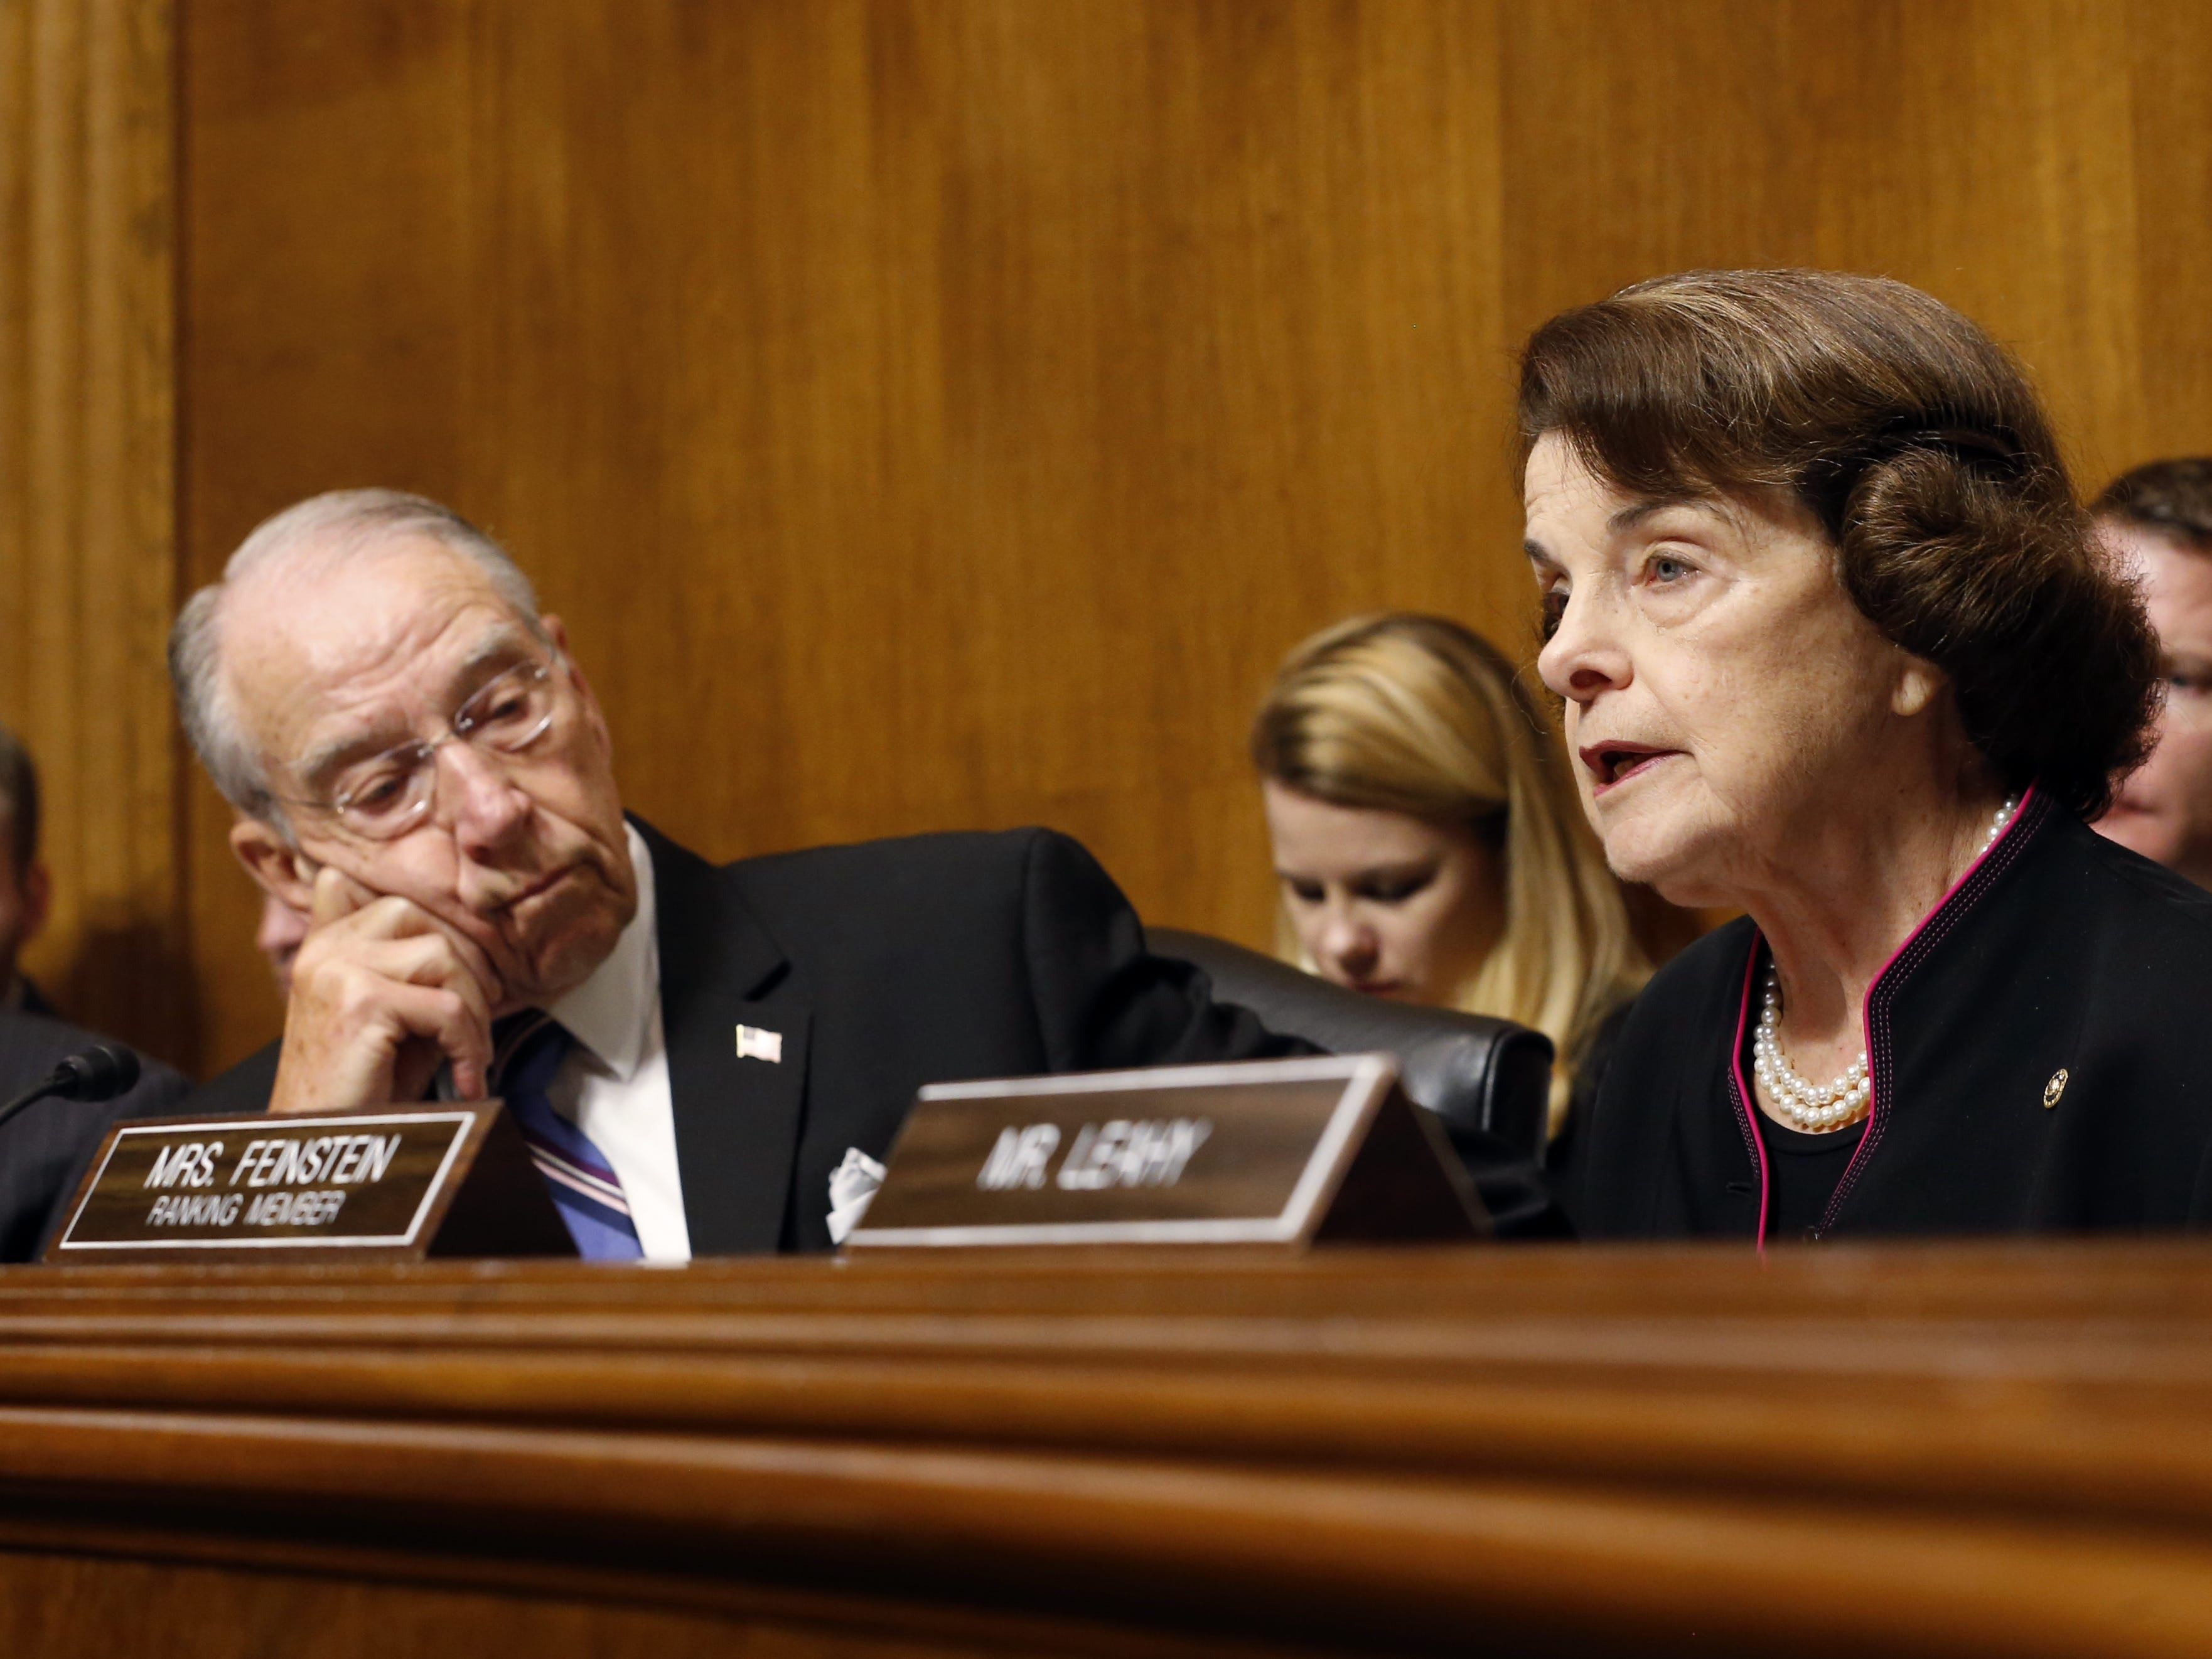 WASHINGTON, DC - SEPTEMBER 27: Senator Chuck Grassley (R-IA) listens to Senator Dianna Feinstein (D-CA) Speak at the Senate Judiciary Committee hearing on the nomination of Brett Kavanaugh to be an associate justice of the Supreme Court of the United States, on Capitol Hill September 27, 2018 in Washington, DC. A professor at Palo Alto University and a research psychologist at the Stanford University School of Medicine, Ford has accused Supreme Court nominee Judge Brett Kavanaugh of sexually assaulting her during a party in 1982 when they were high school students in suburban Maryland. (Photo By Michael Reynolds-Pool/Getty Images) ORG XMIT: 775234142 ORIG FILE ID: 1041670964